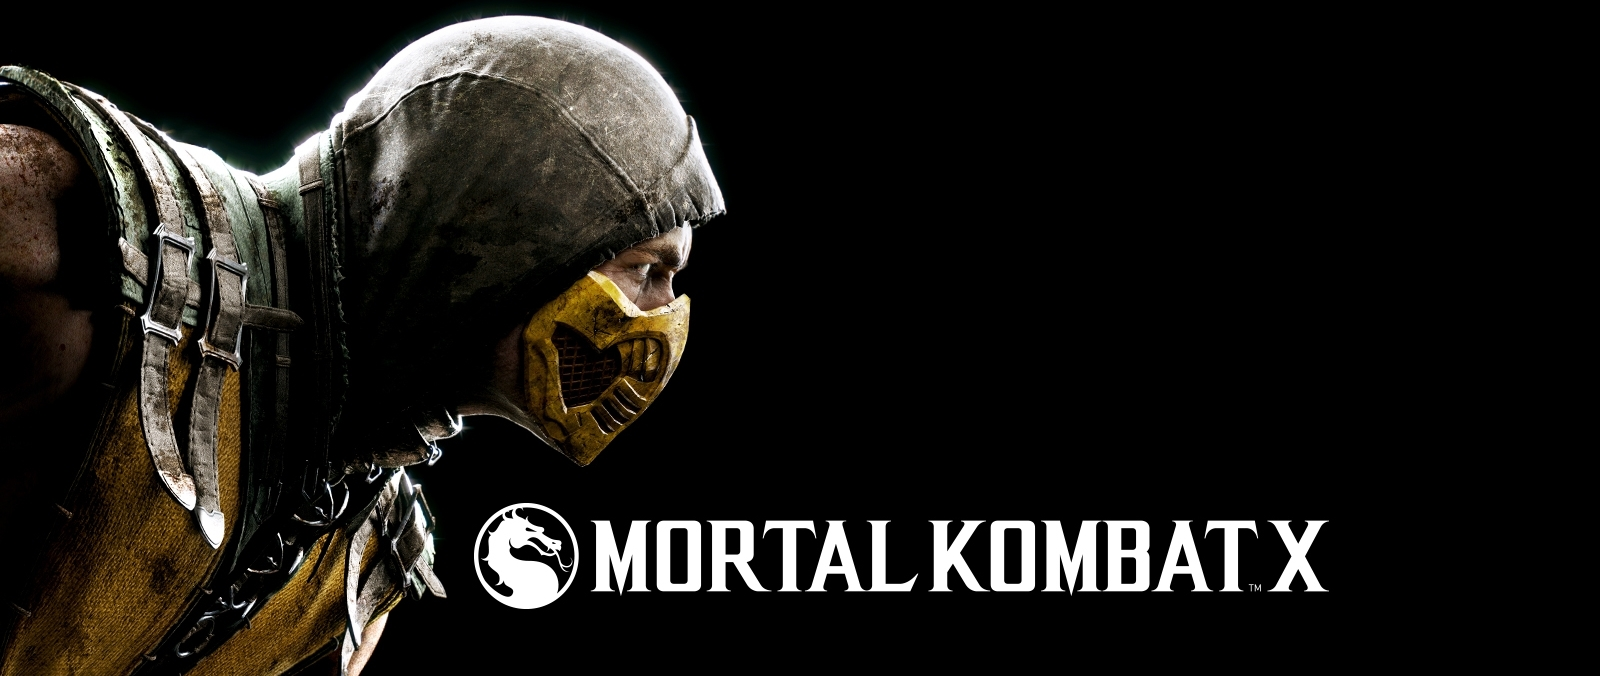 Photo of Mortal Kombat X system requirements for PCs are revealed